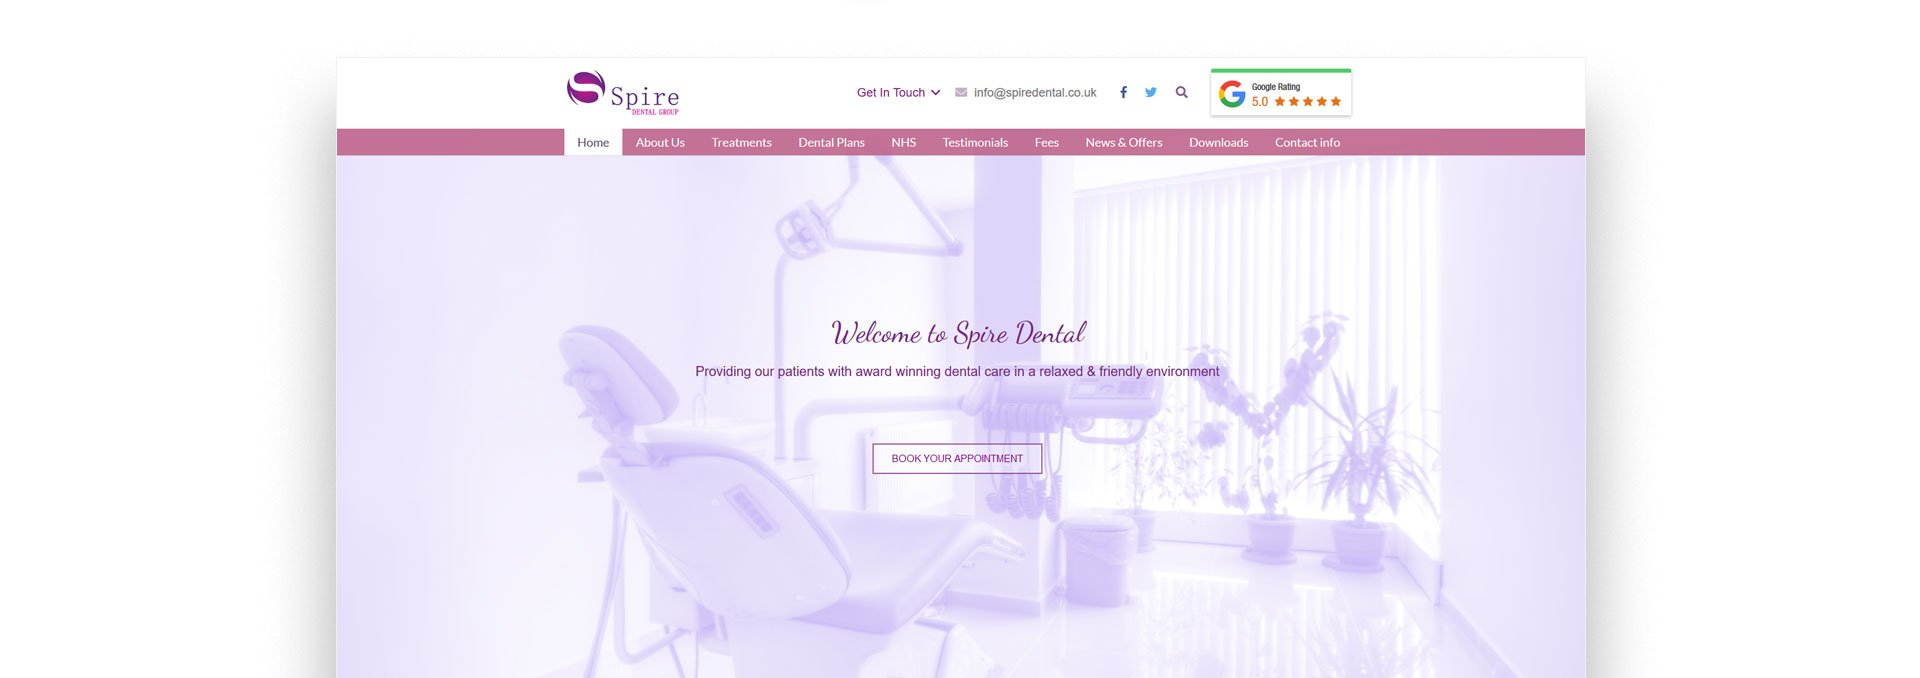 Website Design spire dental 2a